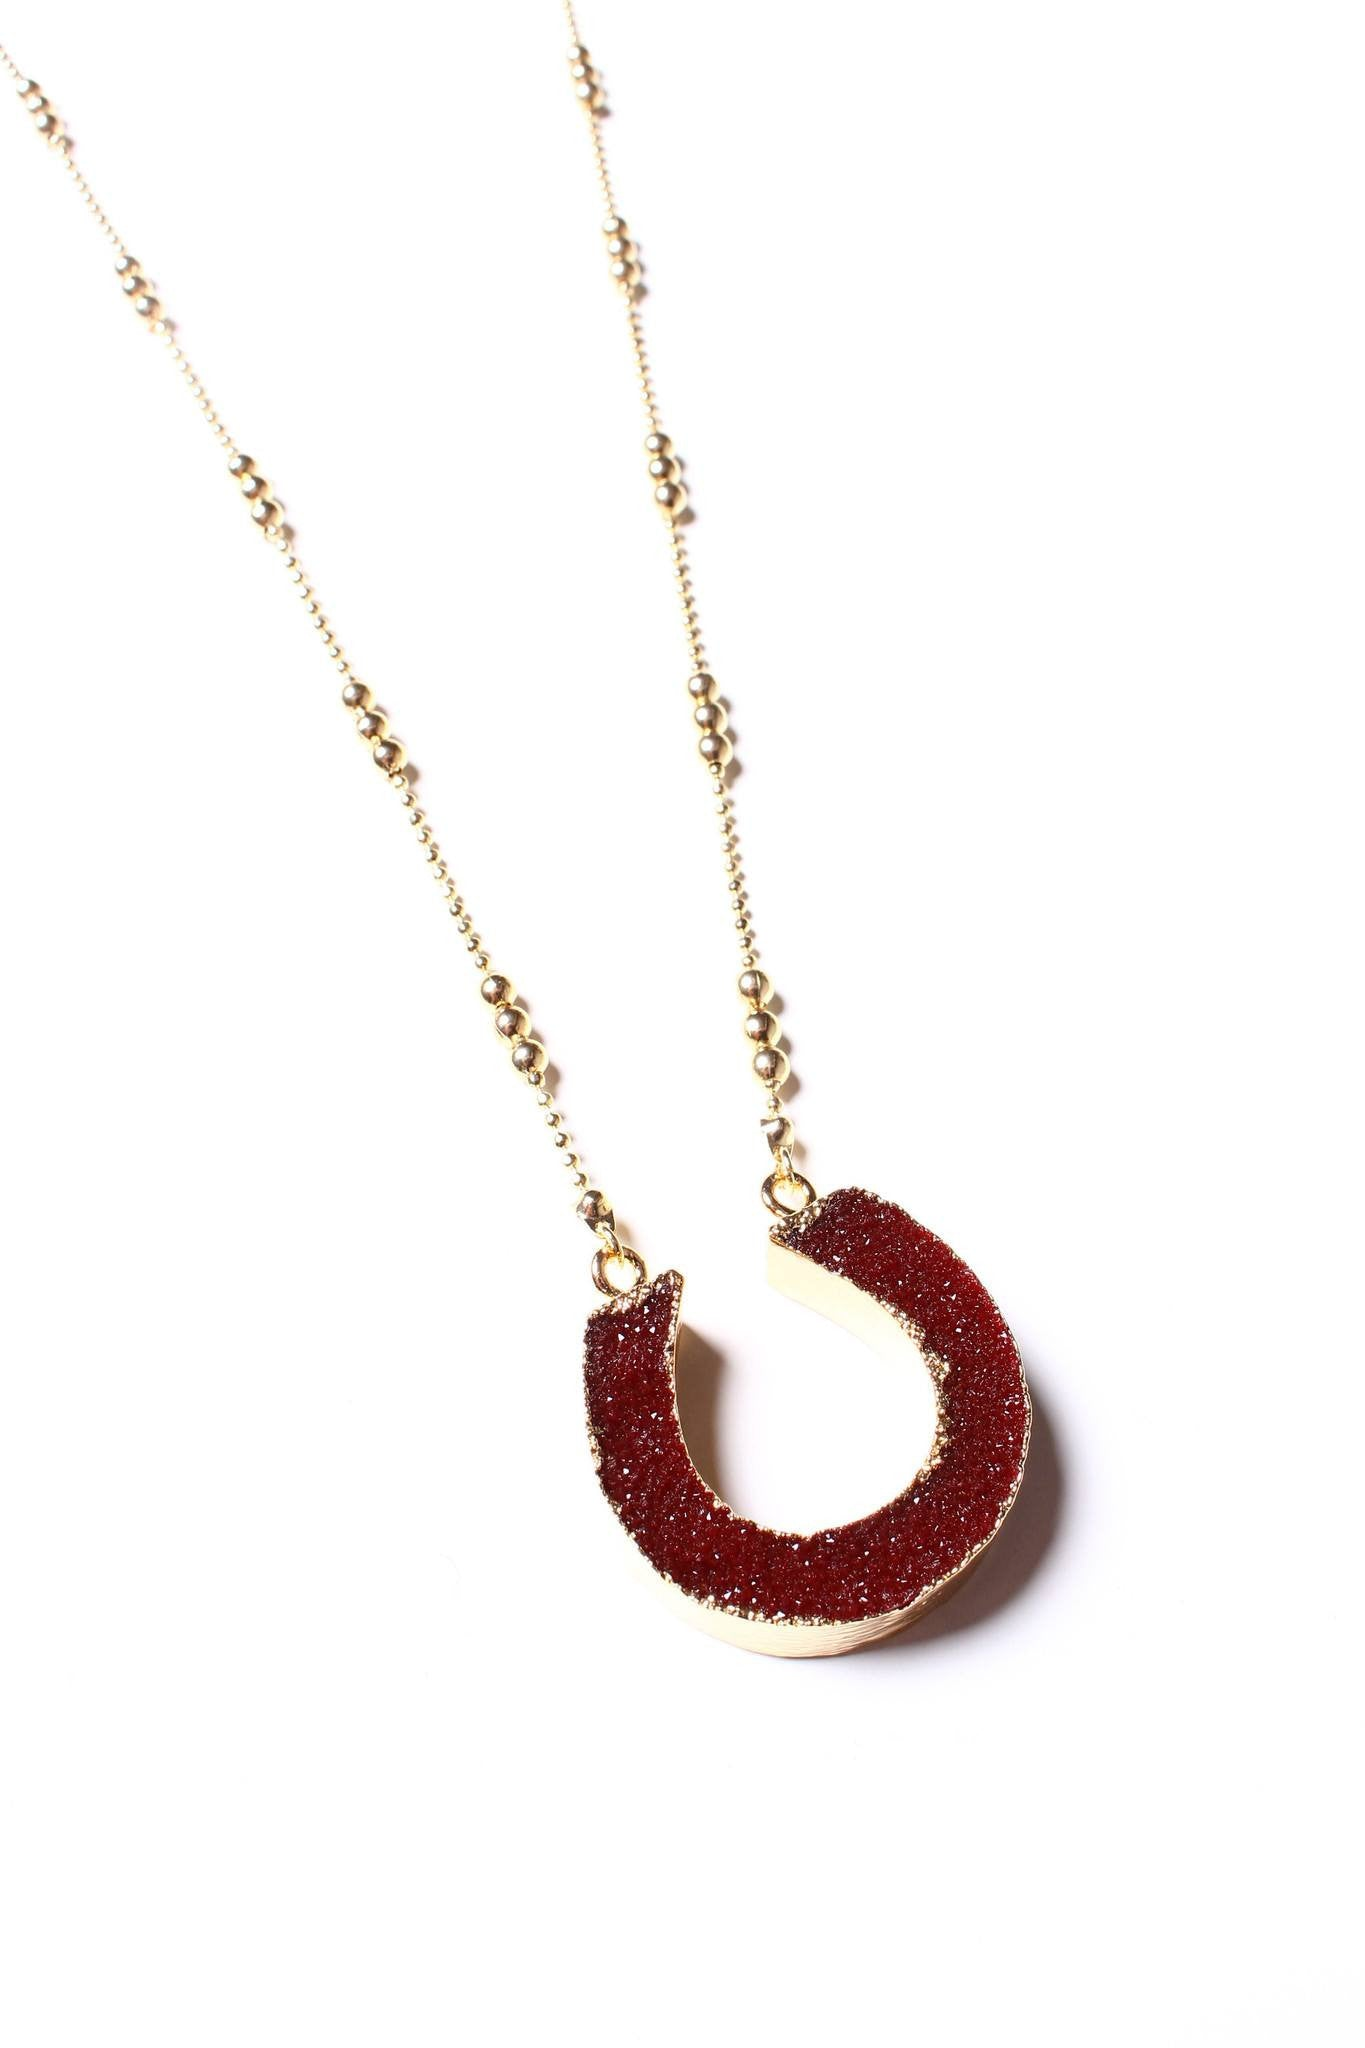 Bring It Back Druzy Pendant - Wine